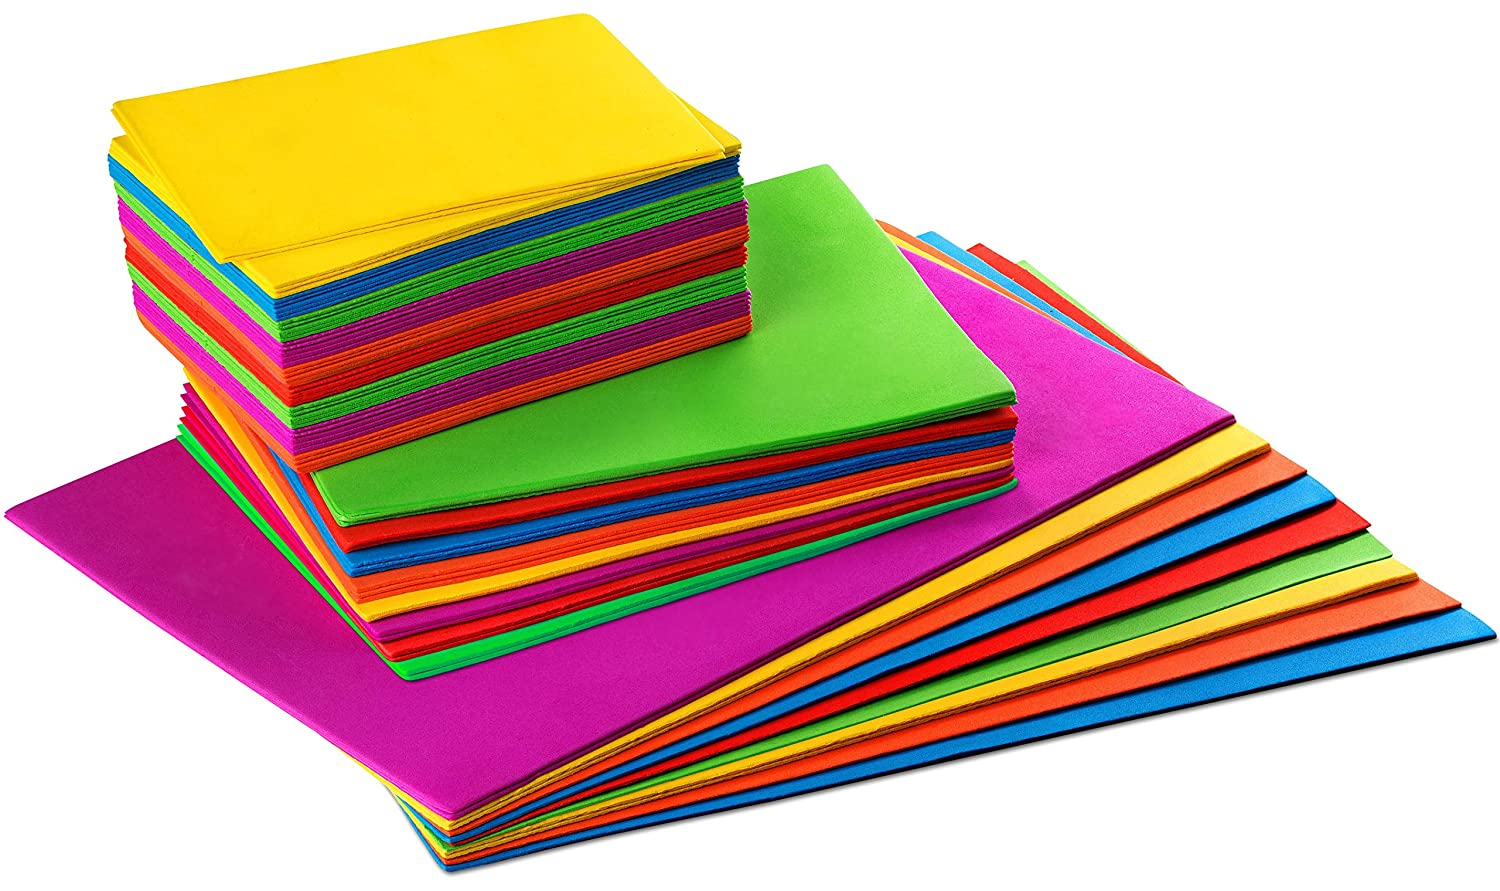 3 Sizes Set of 54 Kids Arts and Crafts Foam Paper Foam Craft Sheets Rainbow Colors